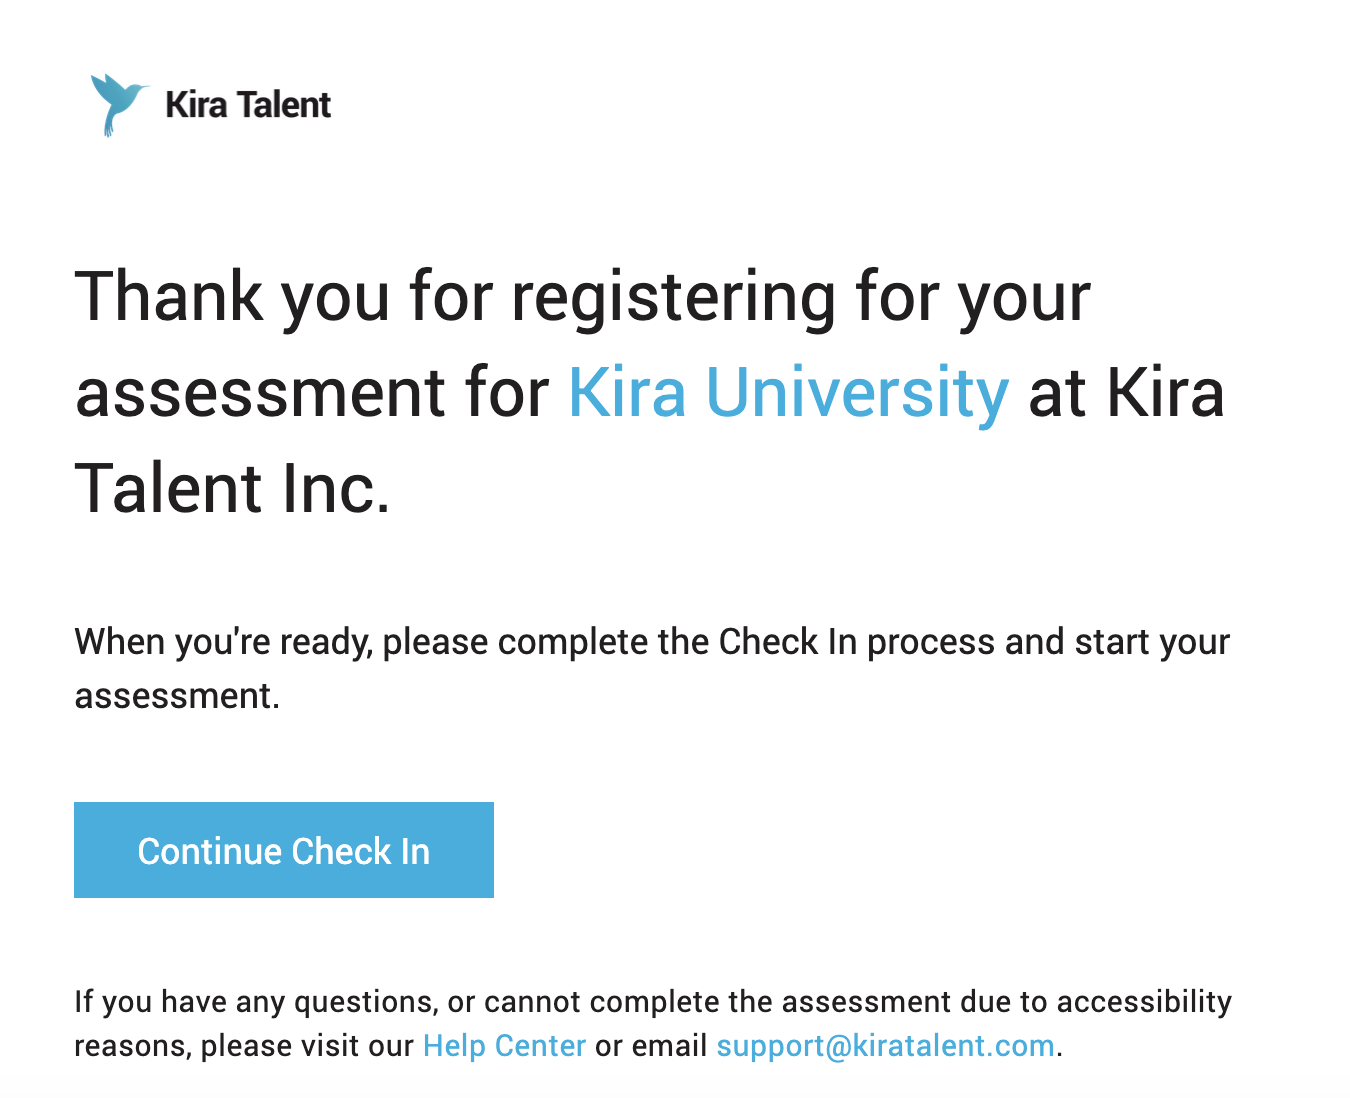 The registration email from Kira providing applicants with their unique Check In link